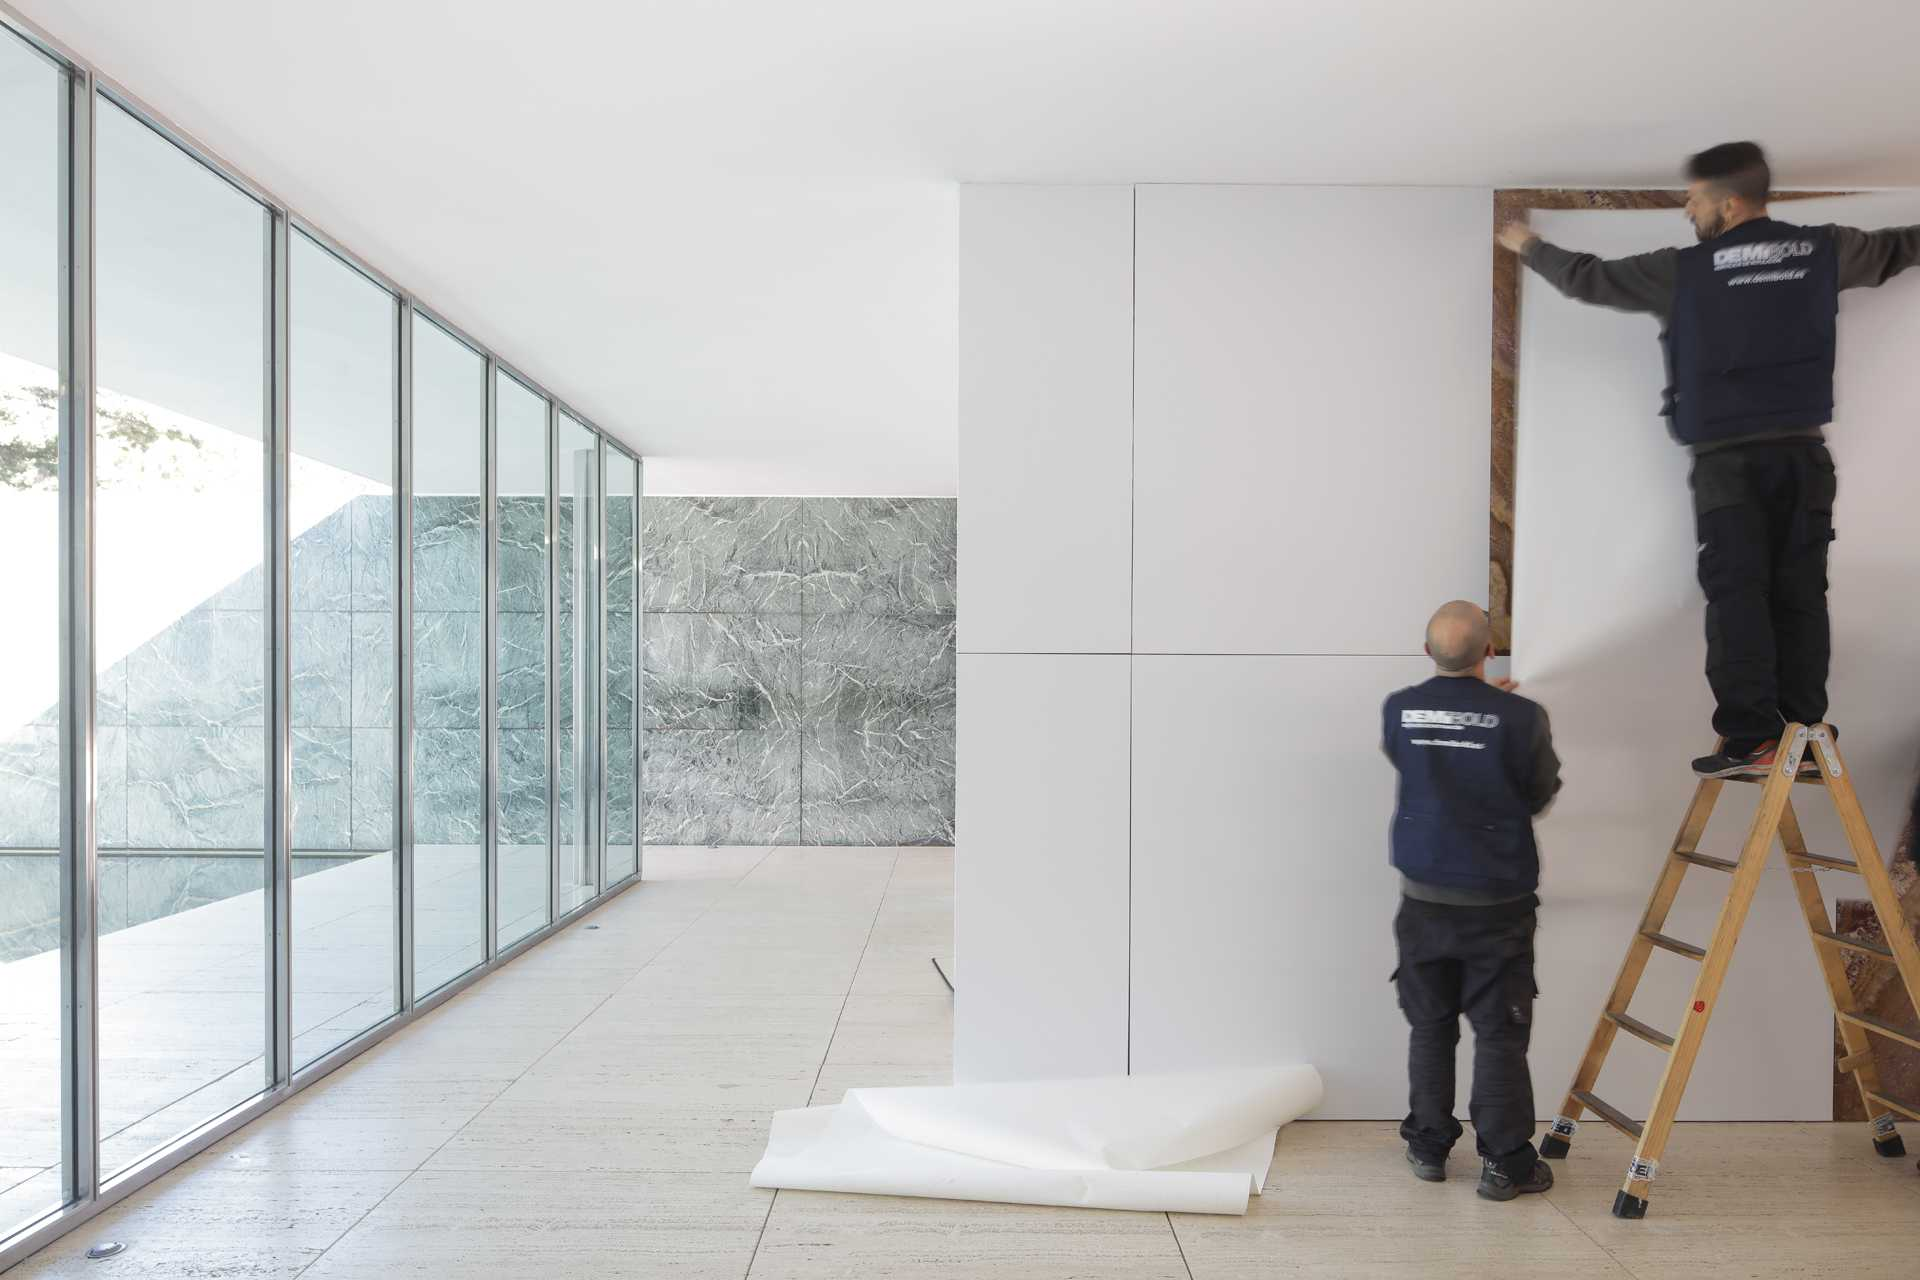 Mies Missing Materiality  - 43 06 37